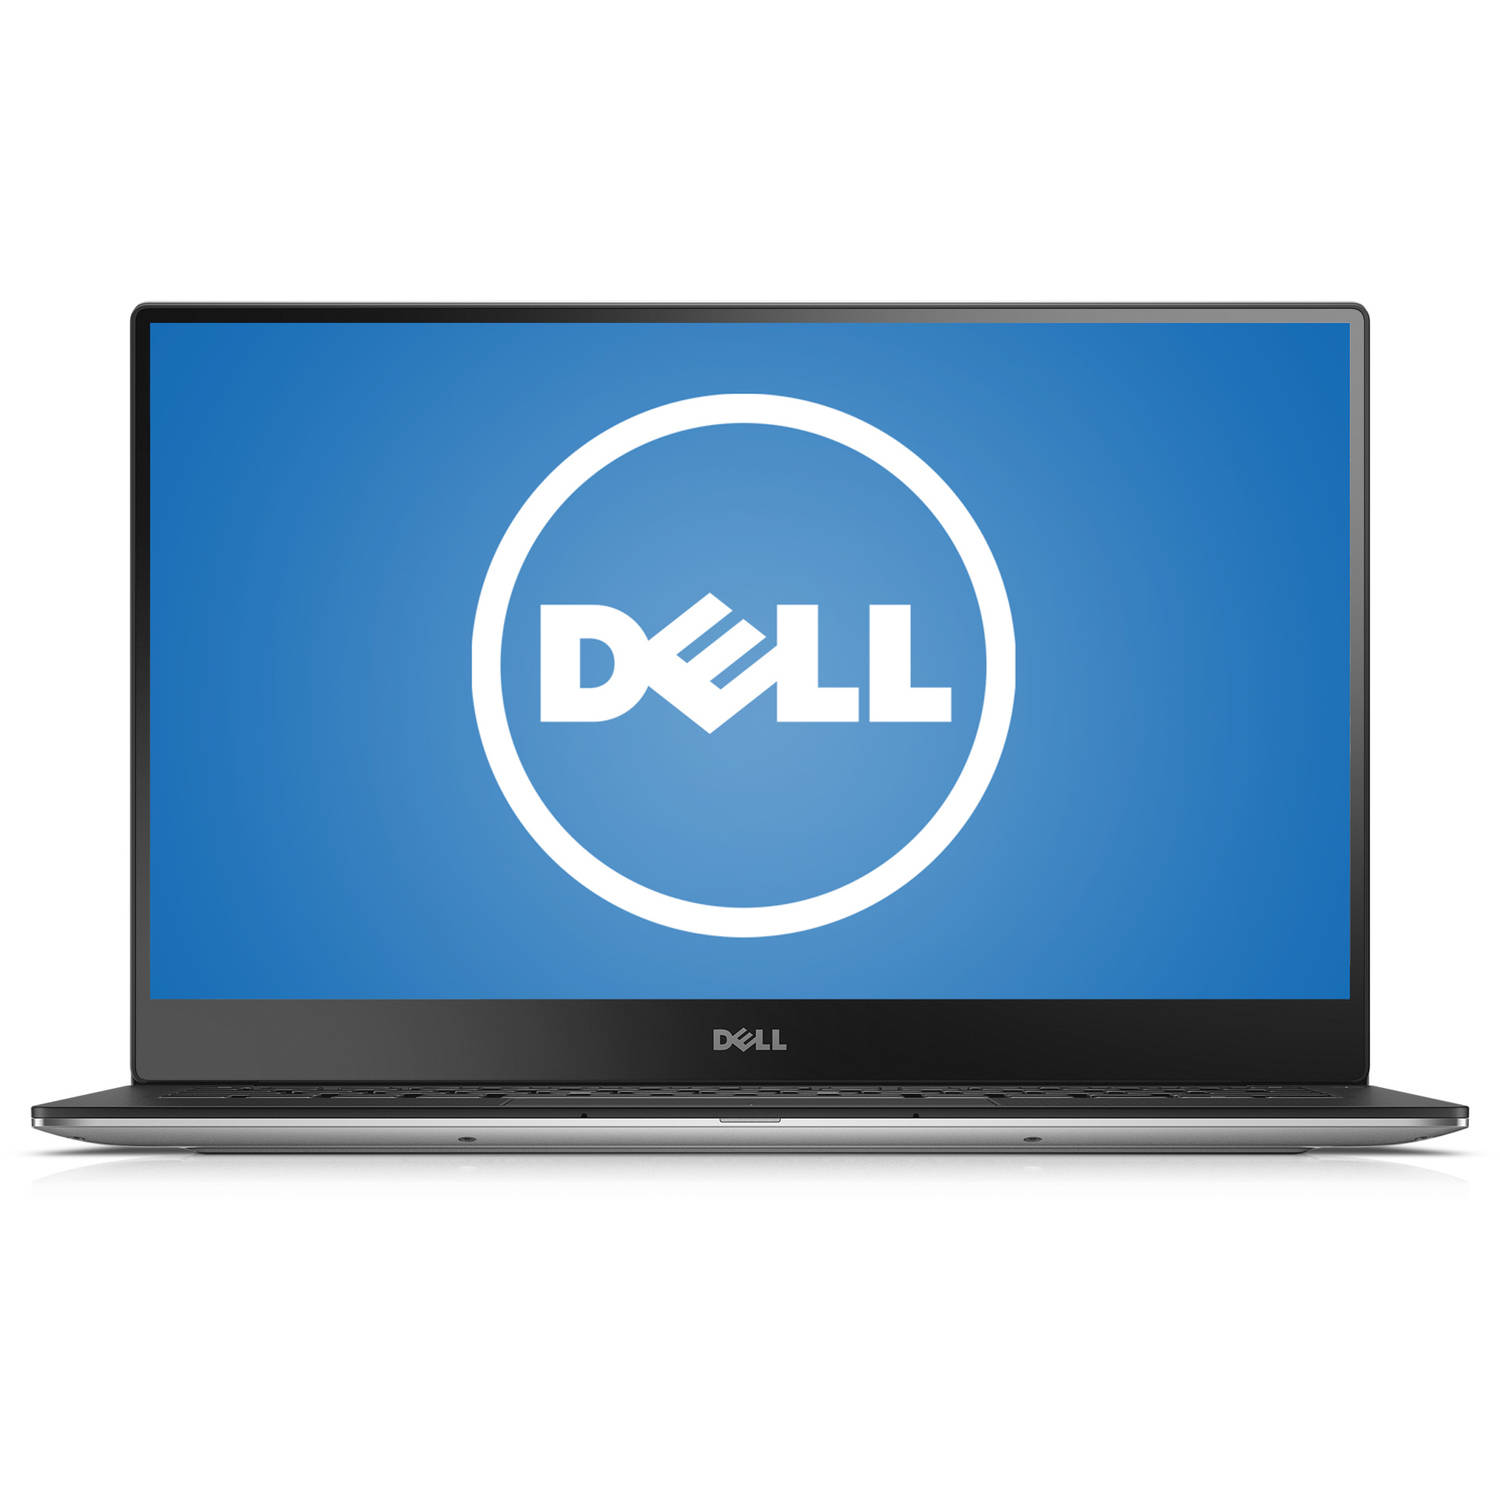 "Dell Silver 13.3"" XPS 13 Laptop PC with Intel Core i5-5200U Processor, 4GB Memory, 128GB SSD and Windows 10"